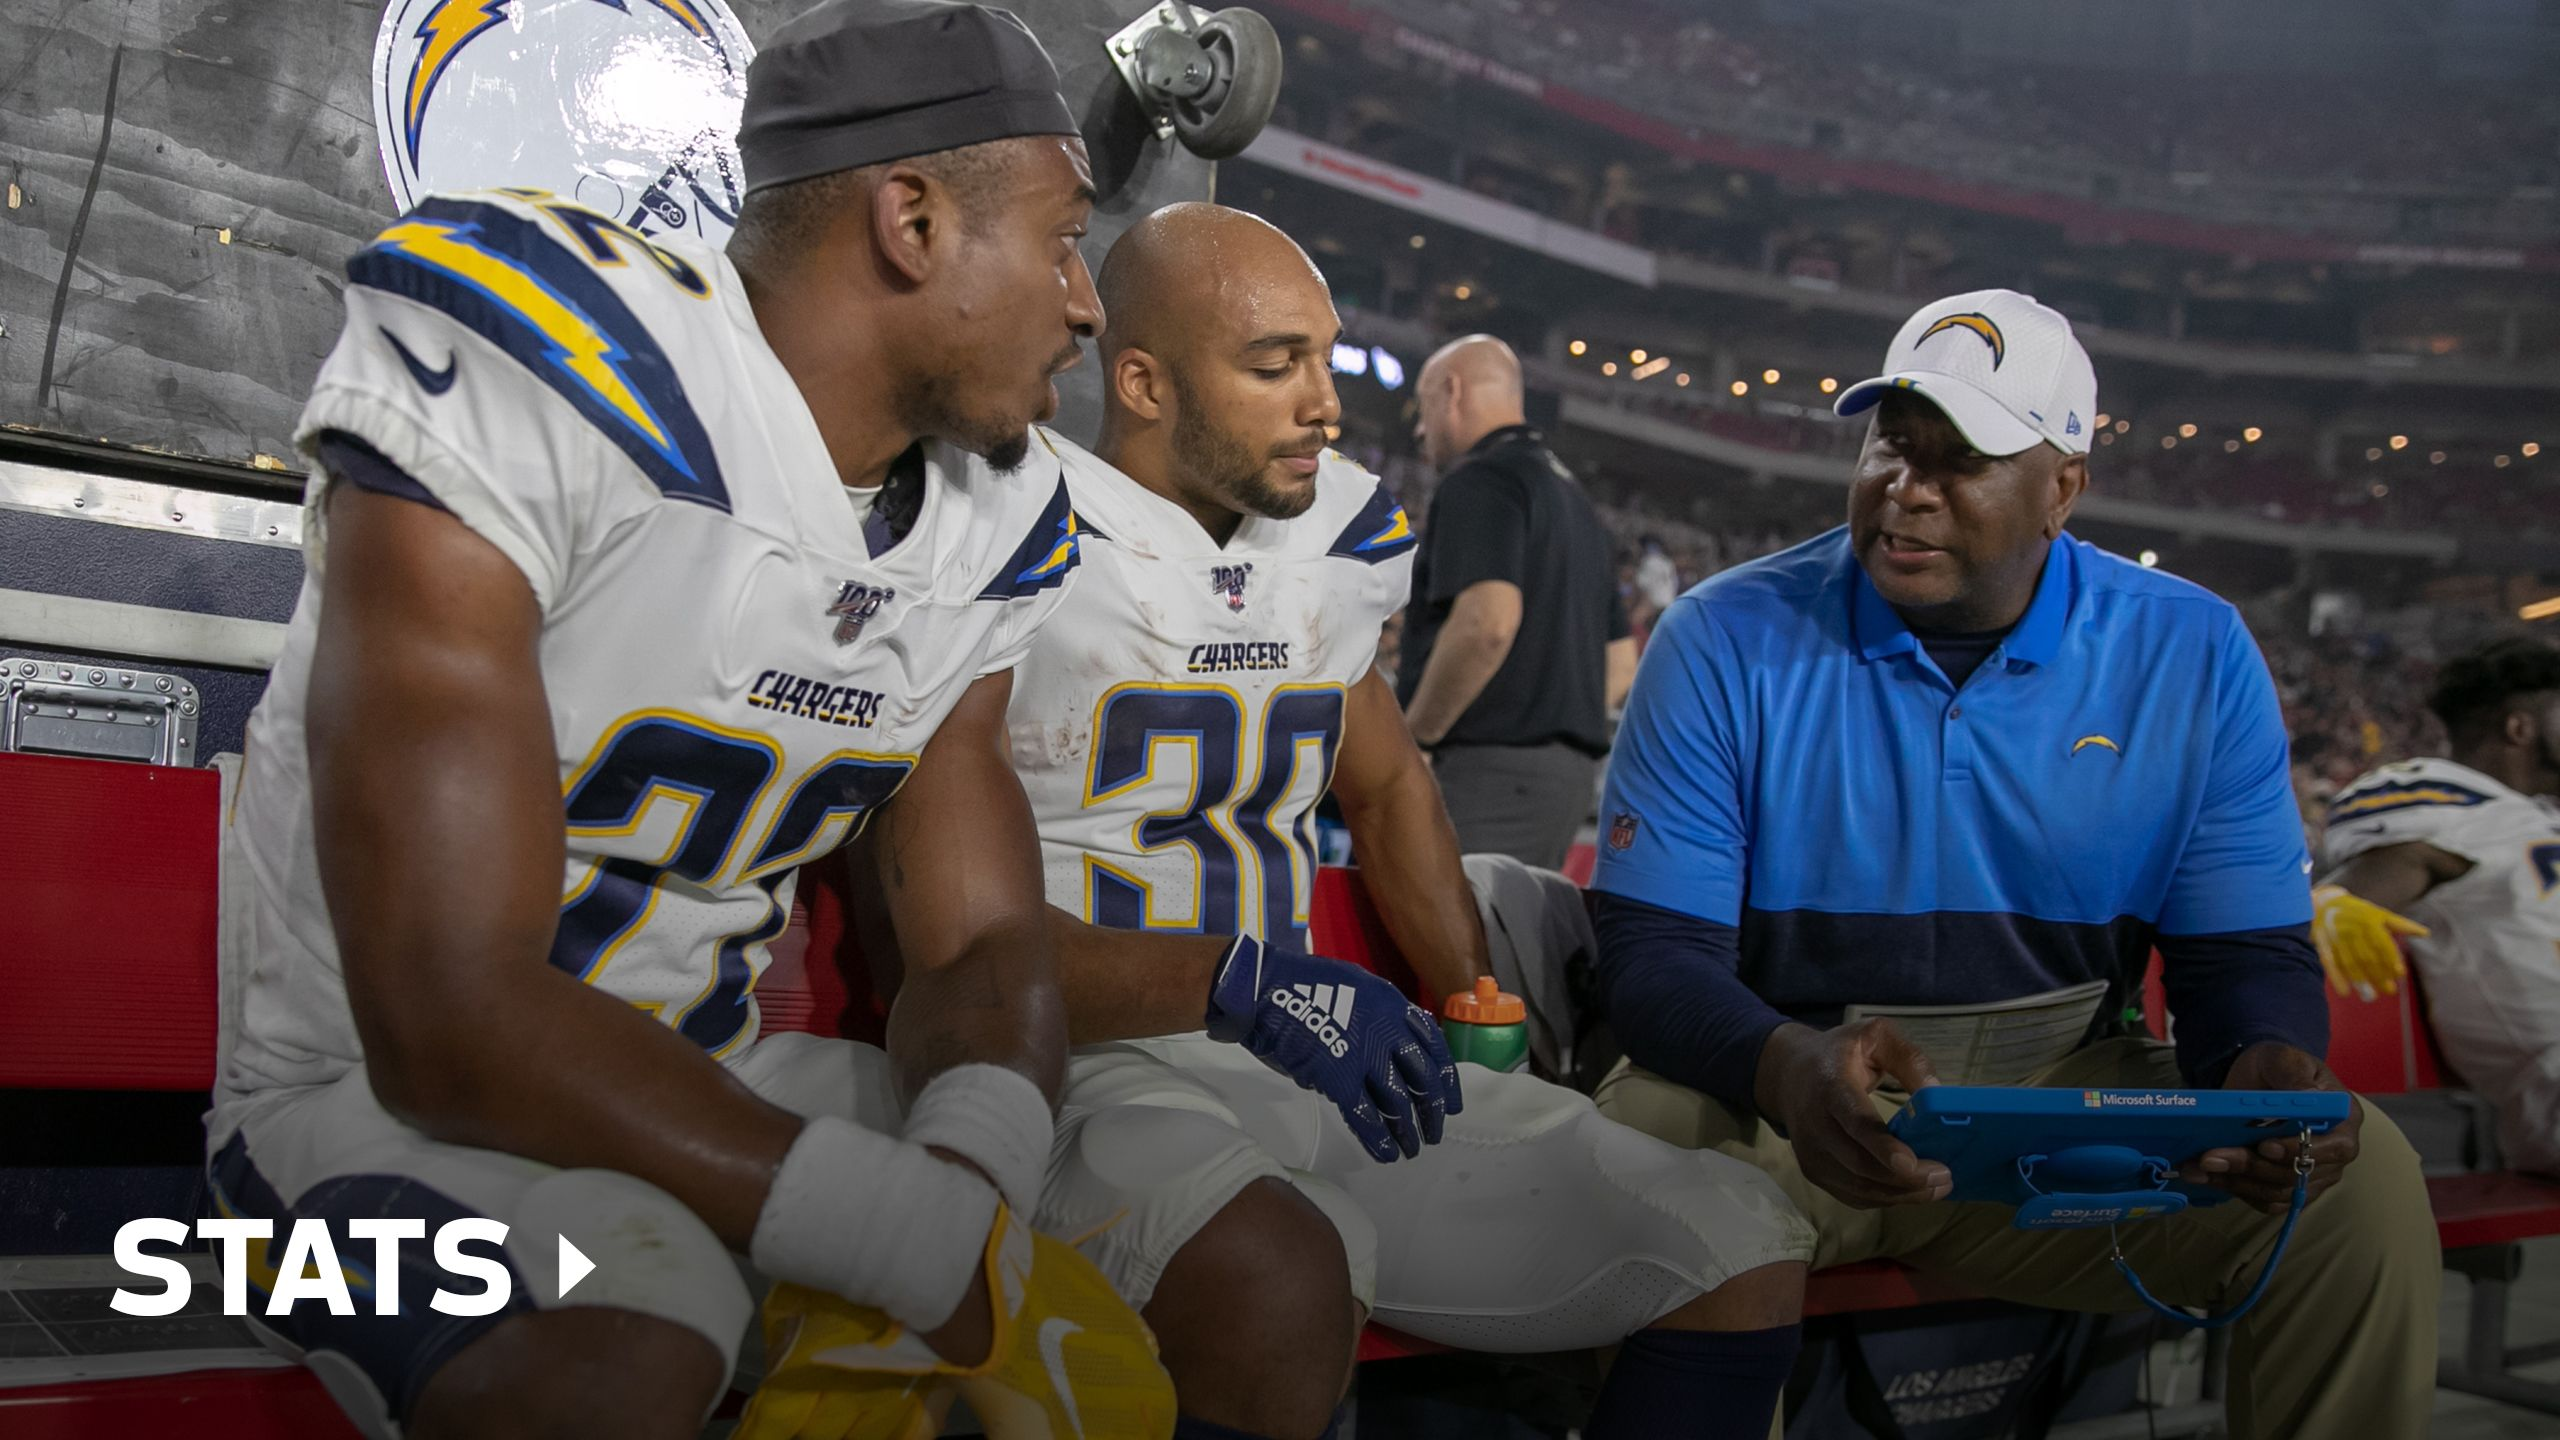 Chargers Team Los Angeles Chargers Chargers Com